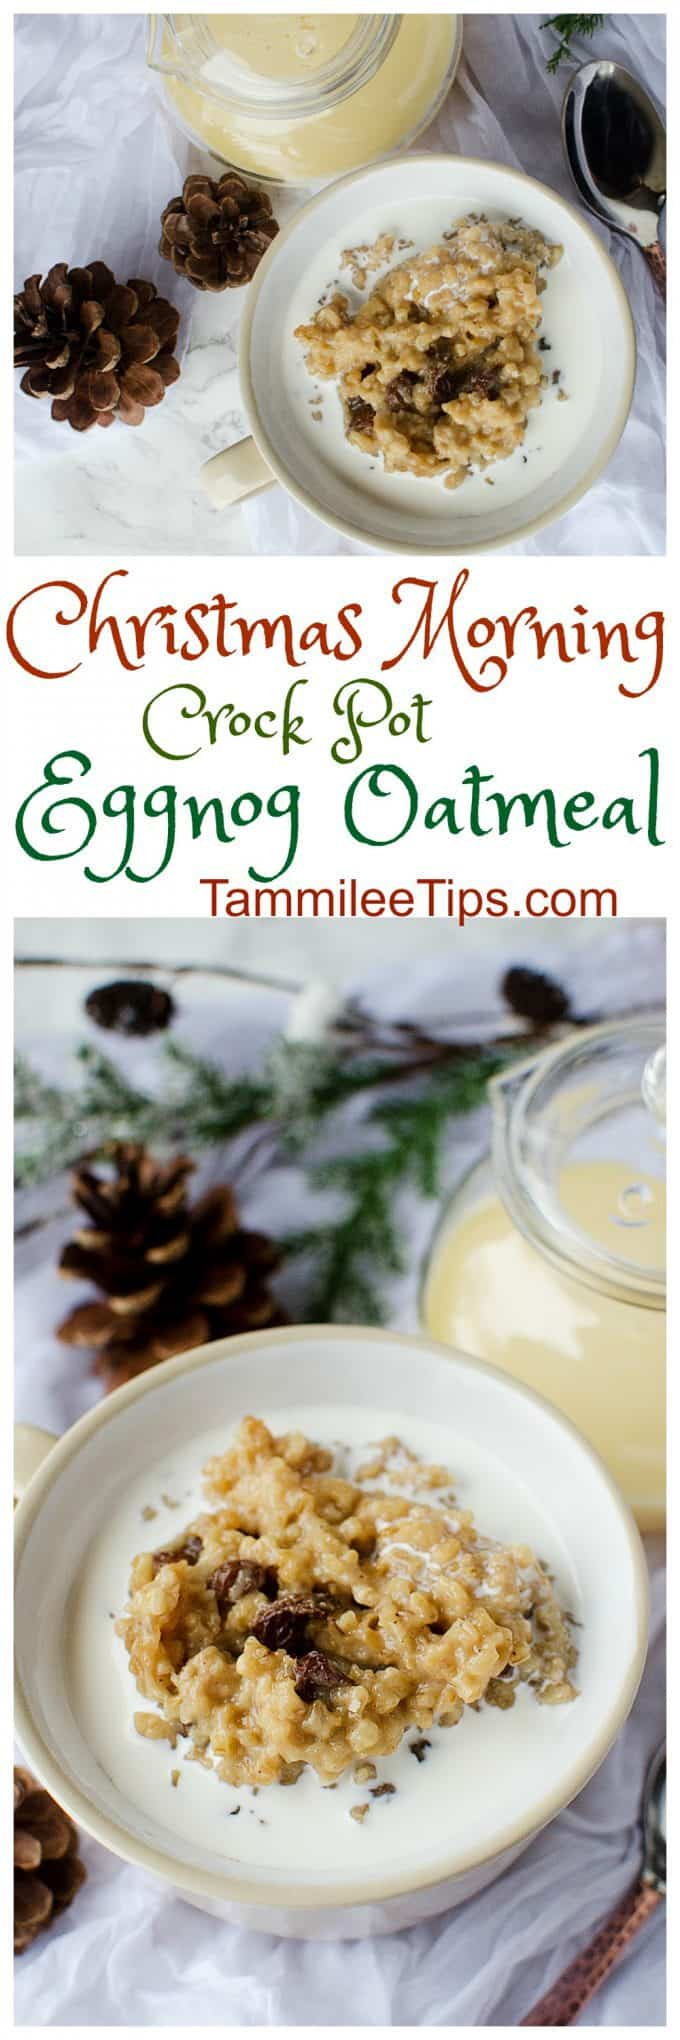 Perfect for Christmas morning Crock Pot Eggnog Oatmeal! Made with steel cut oats the slow cooker does all the work! Save yourself holiday stress and make this overnight oats recipe! #crockpot #slowcooker #oateal #eggnog